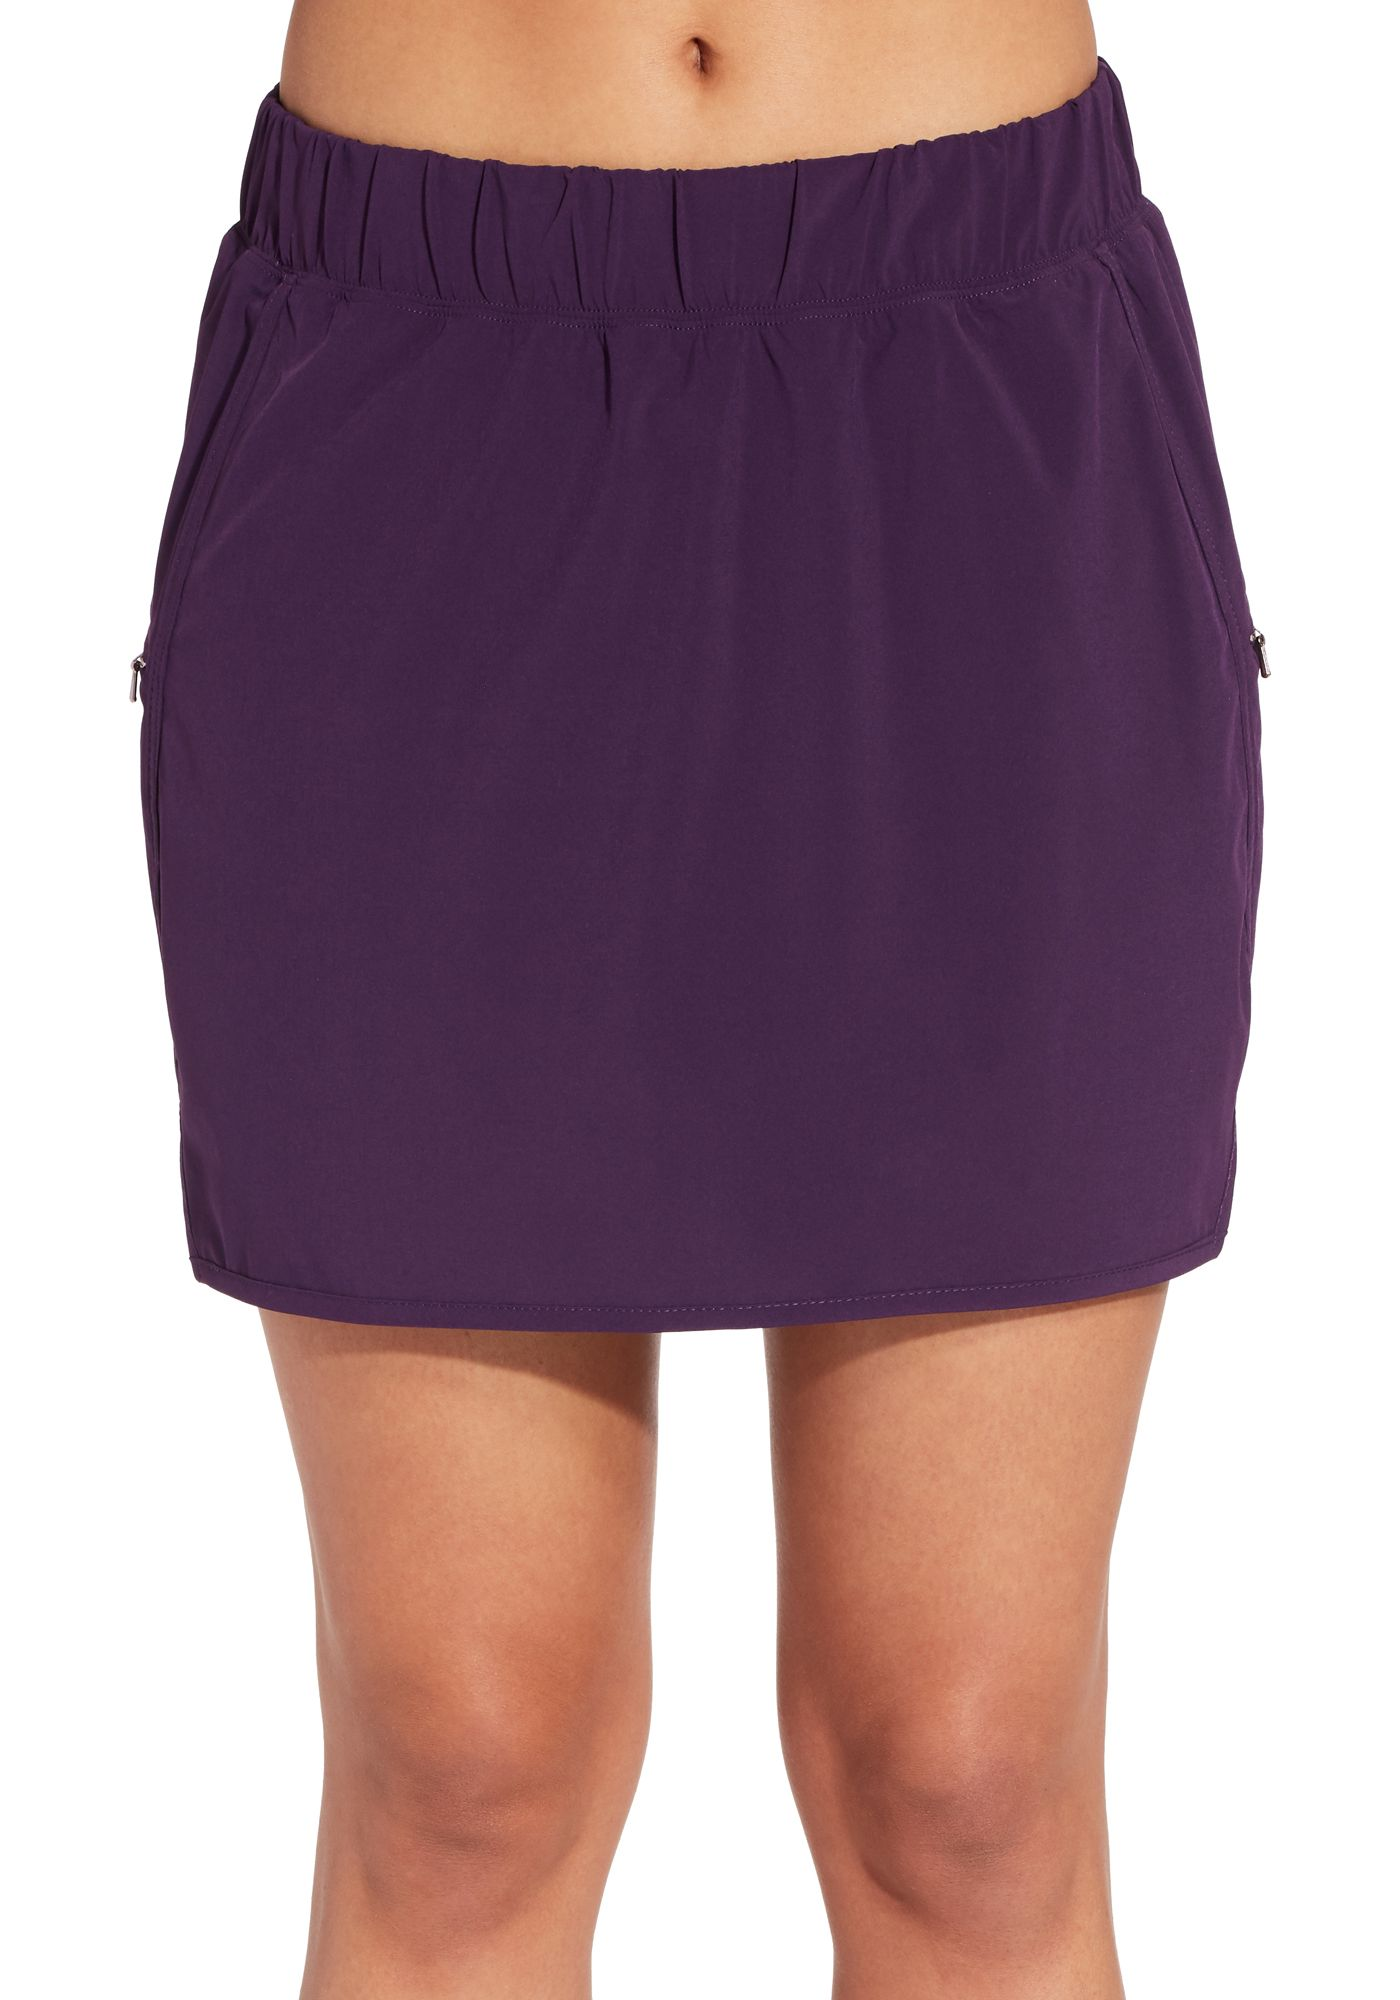 CALIA by Carrie Underwood Women's Anywhere Woven Skort